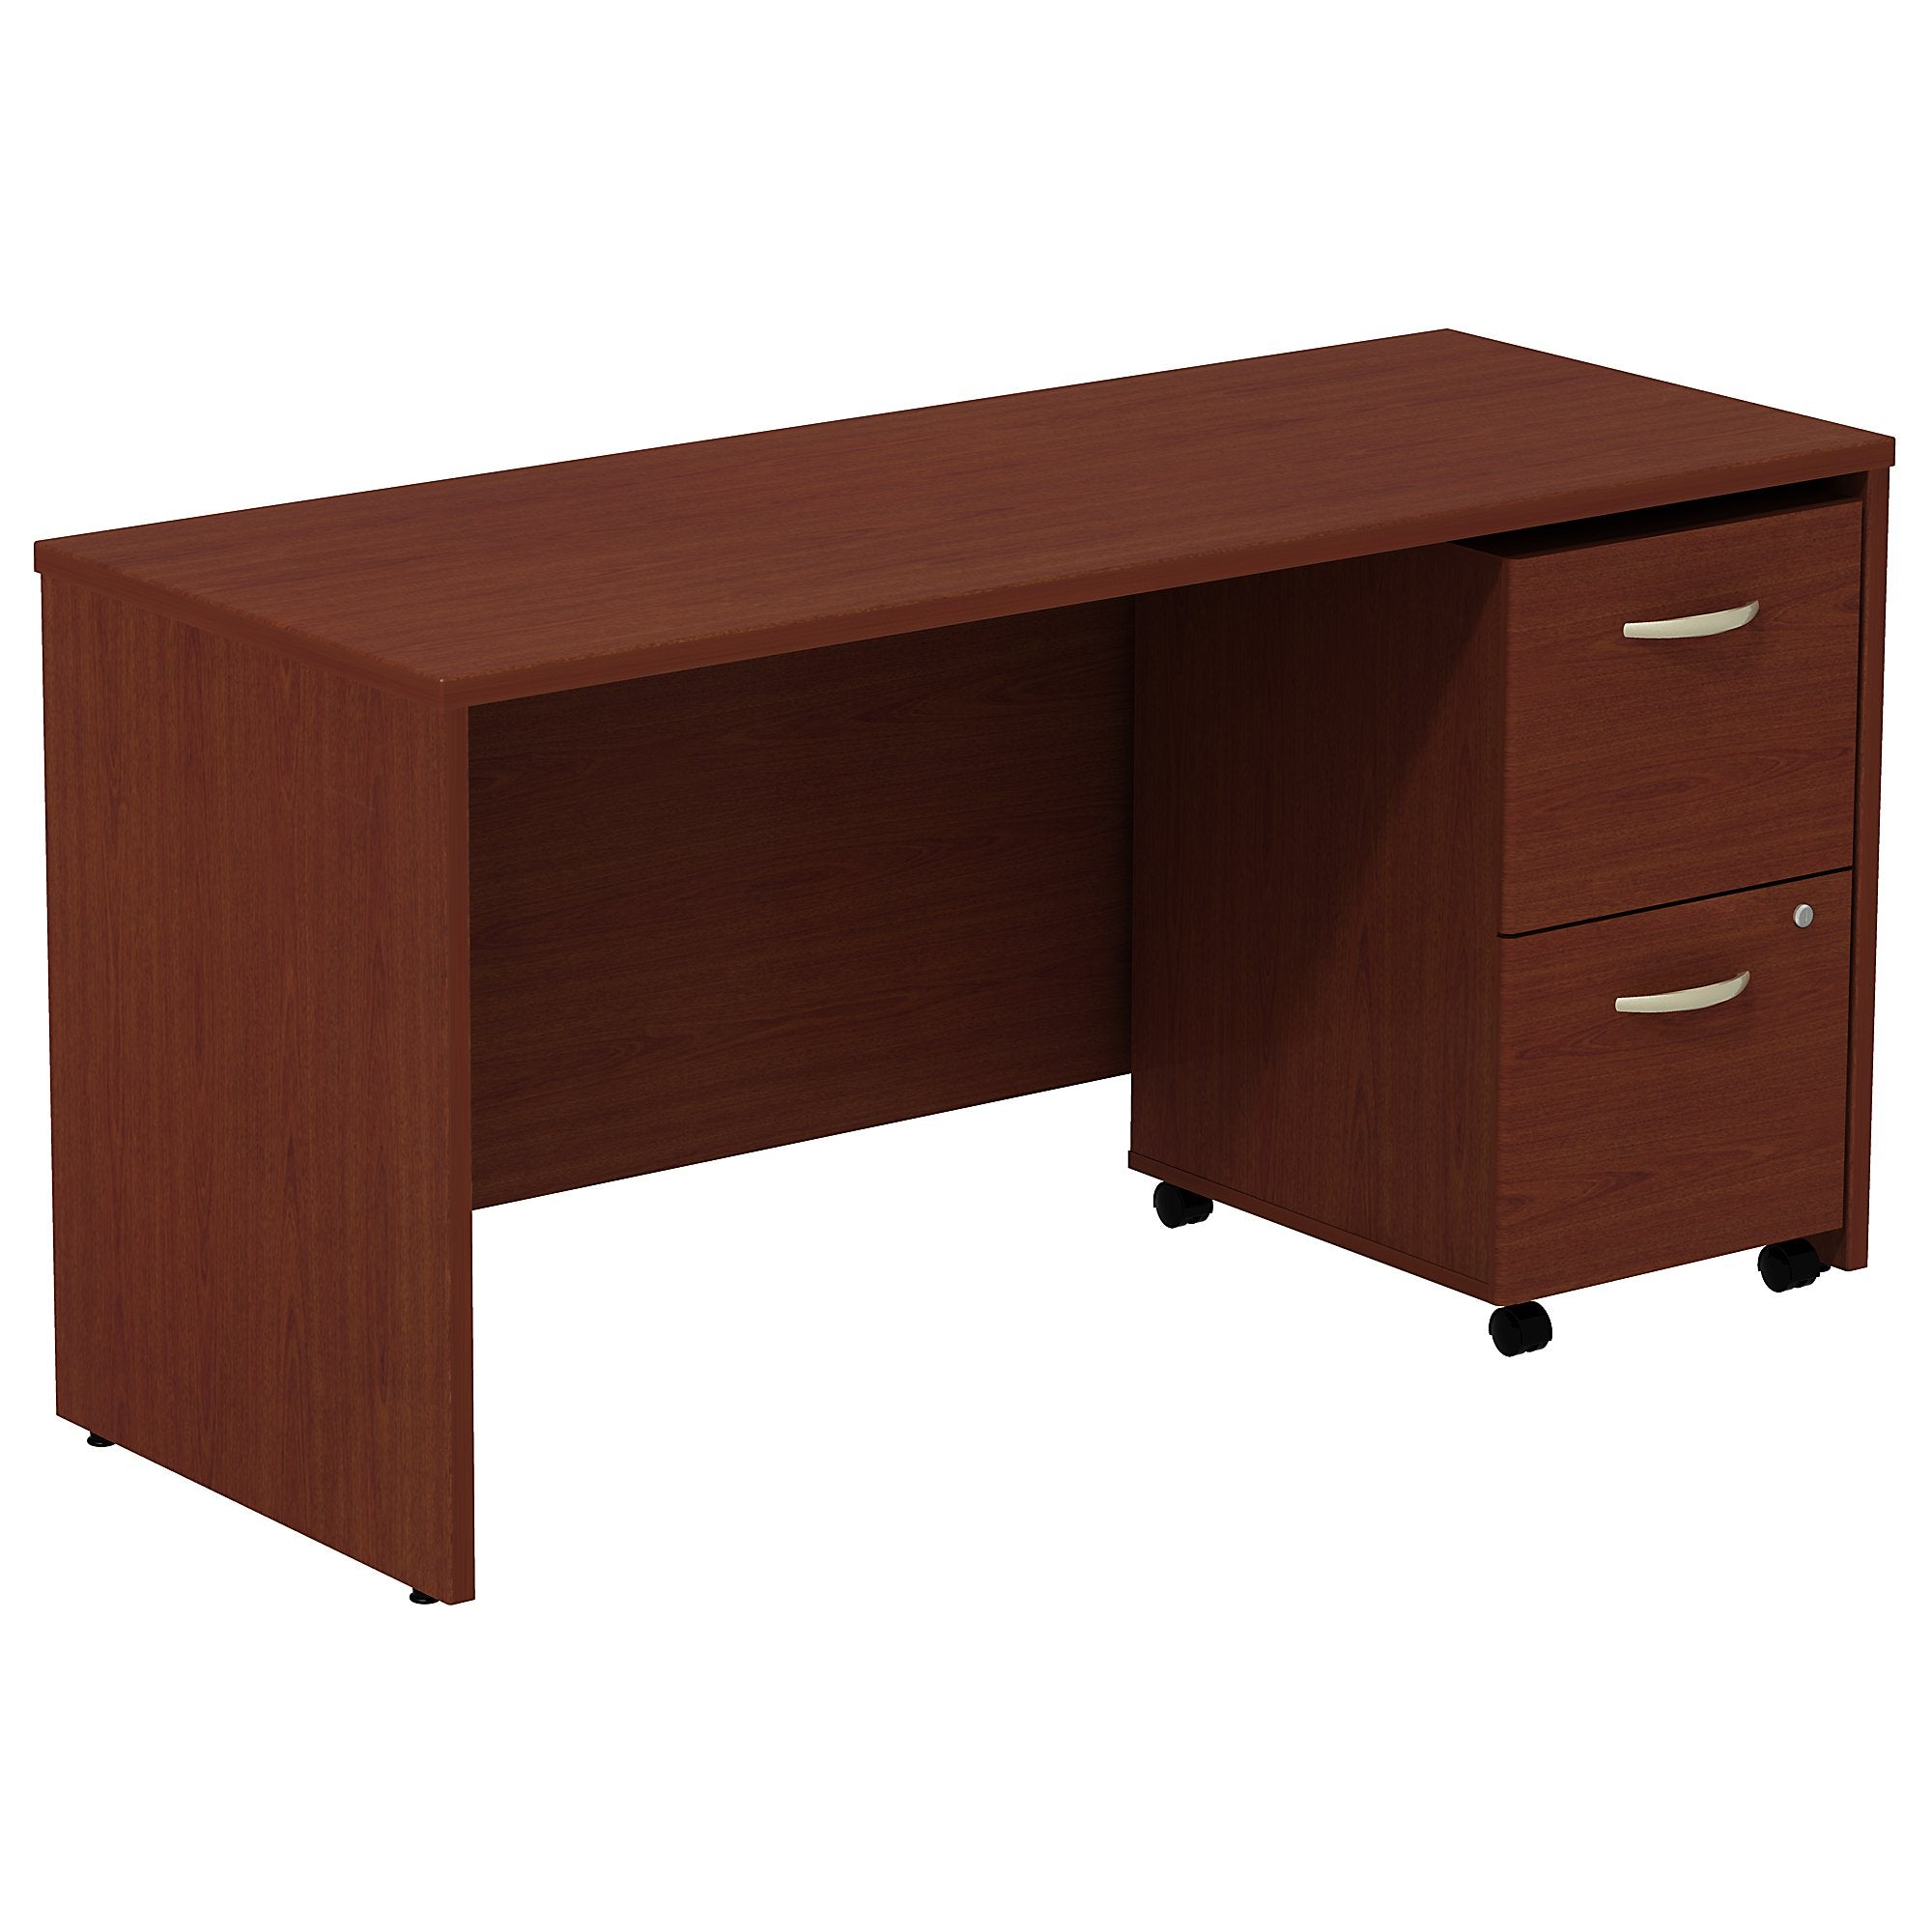 Bush Business Furniture Series C Desk Credenza with 2 Drawer Mobile Pedestal | Mahogany